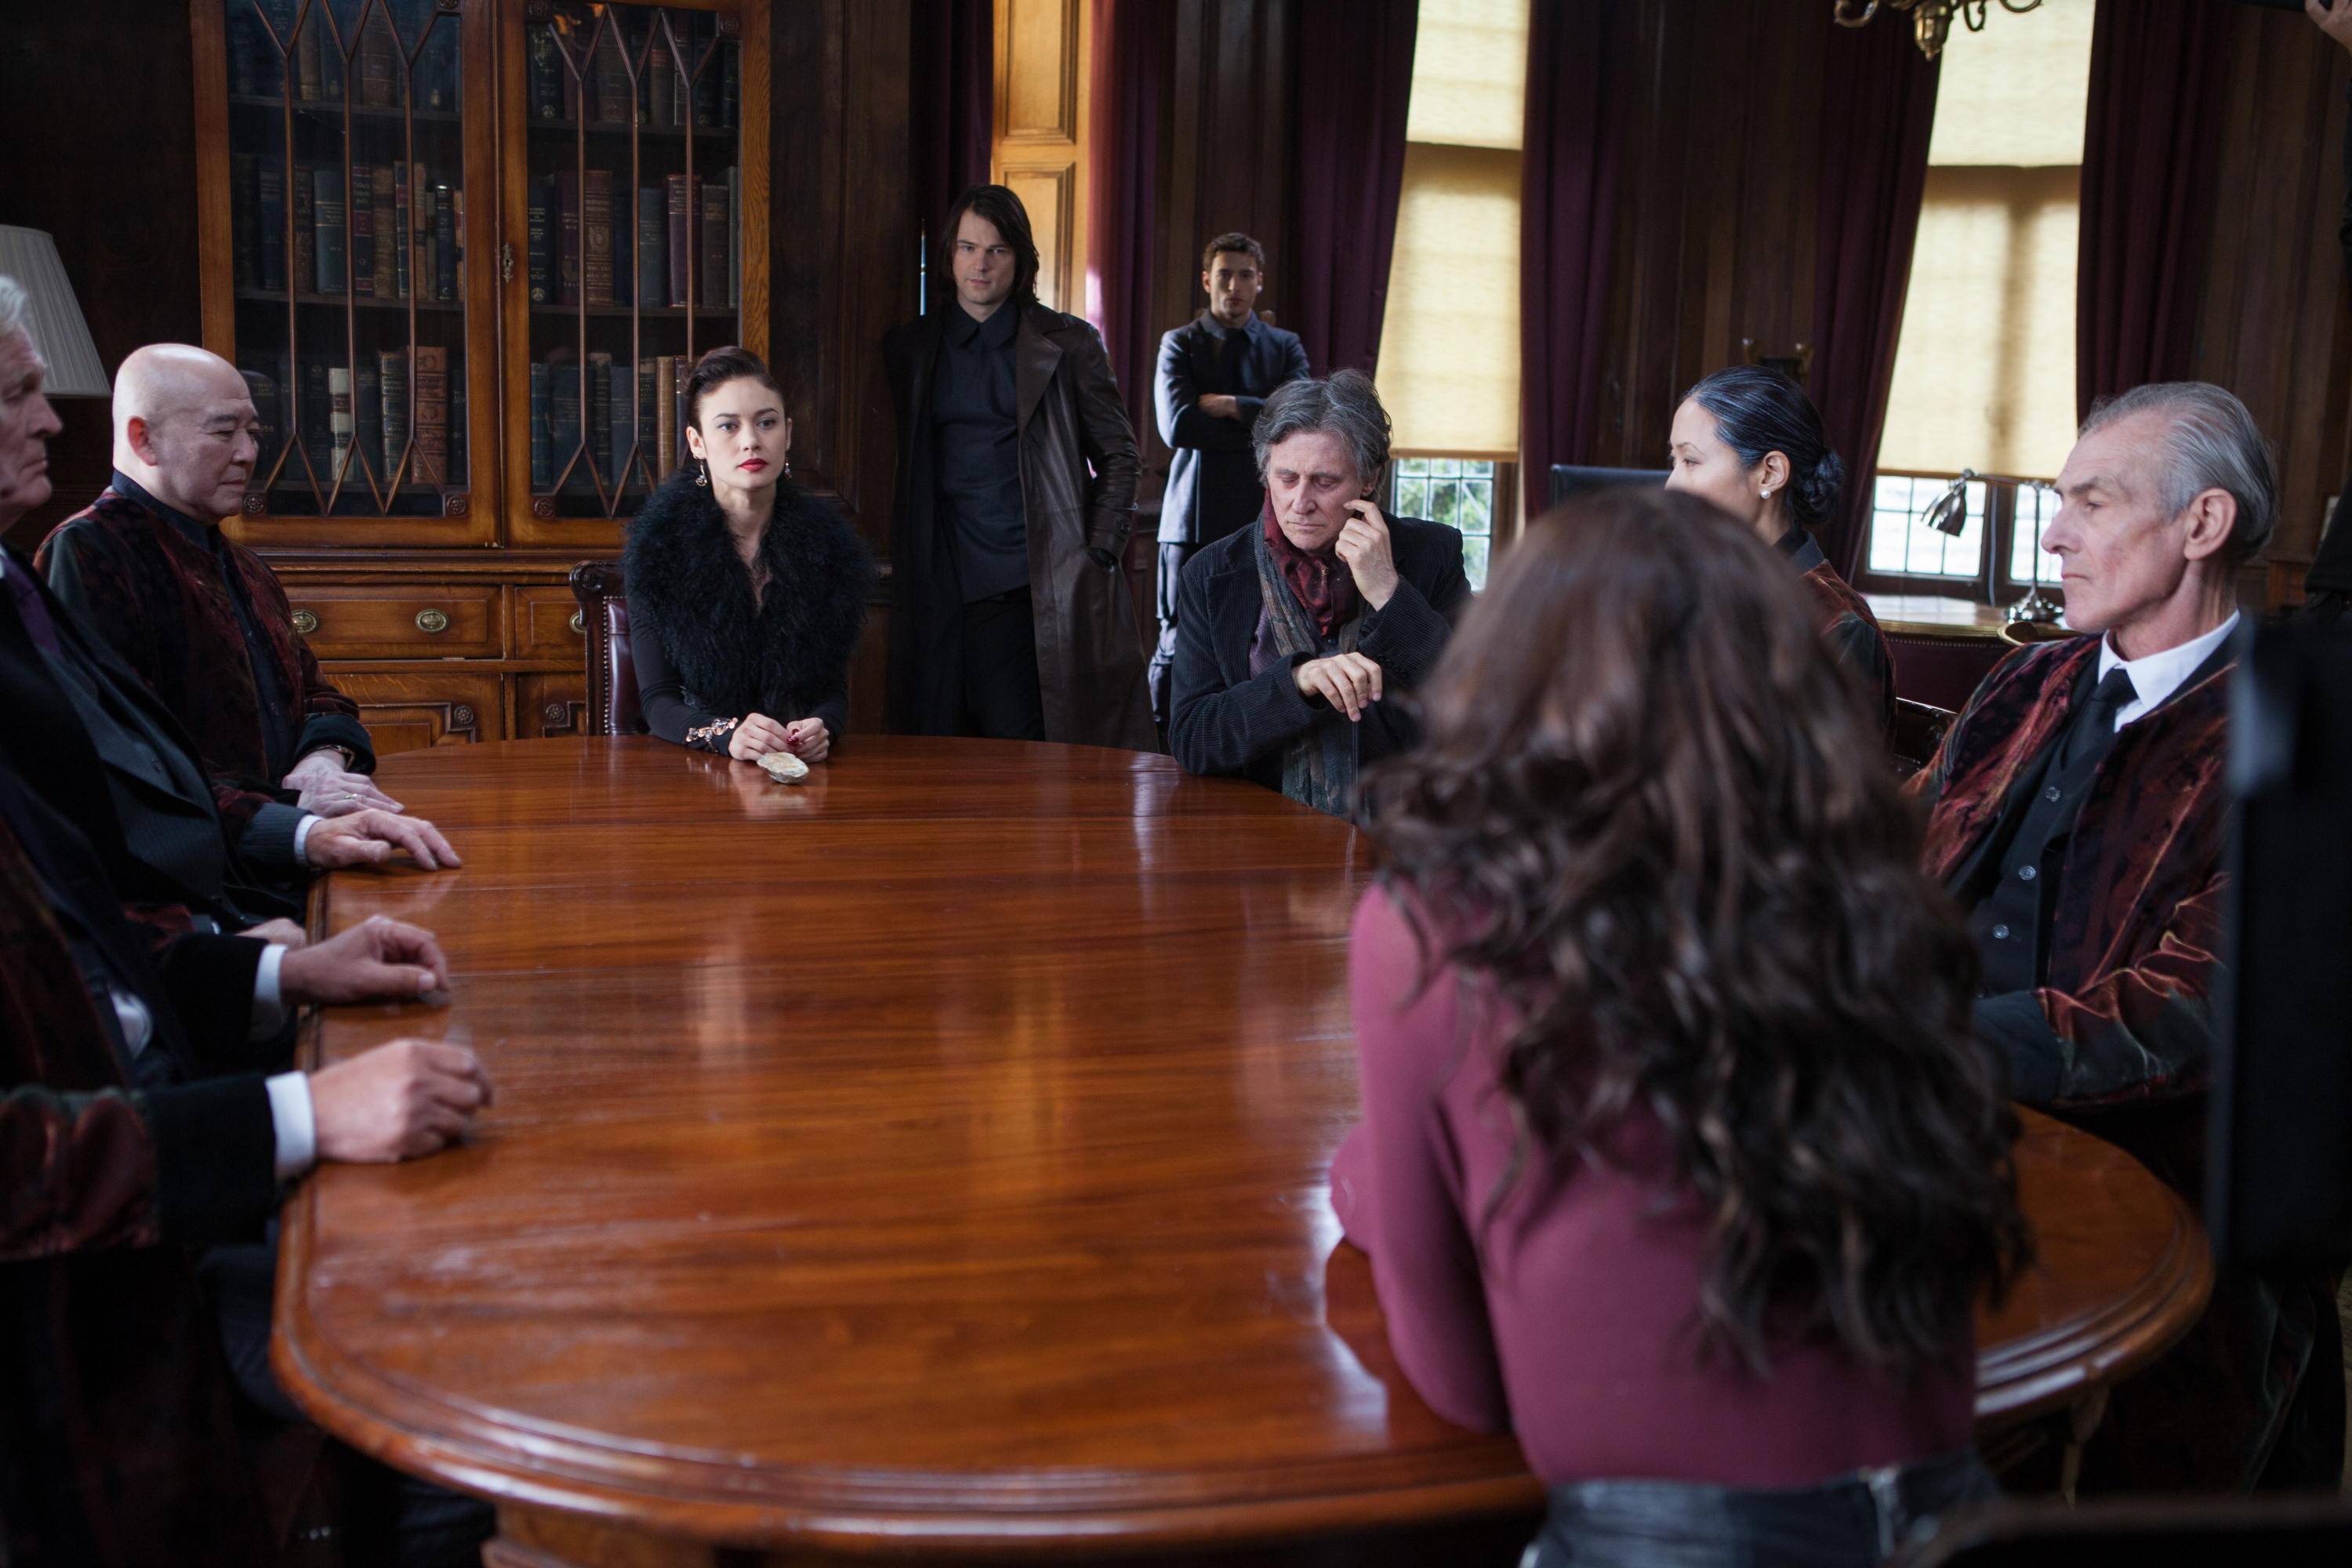 WTF: Vampire Academy (2014) – 1,2,3 WTF!? (Watch the Film)